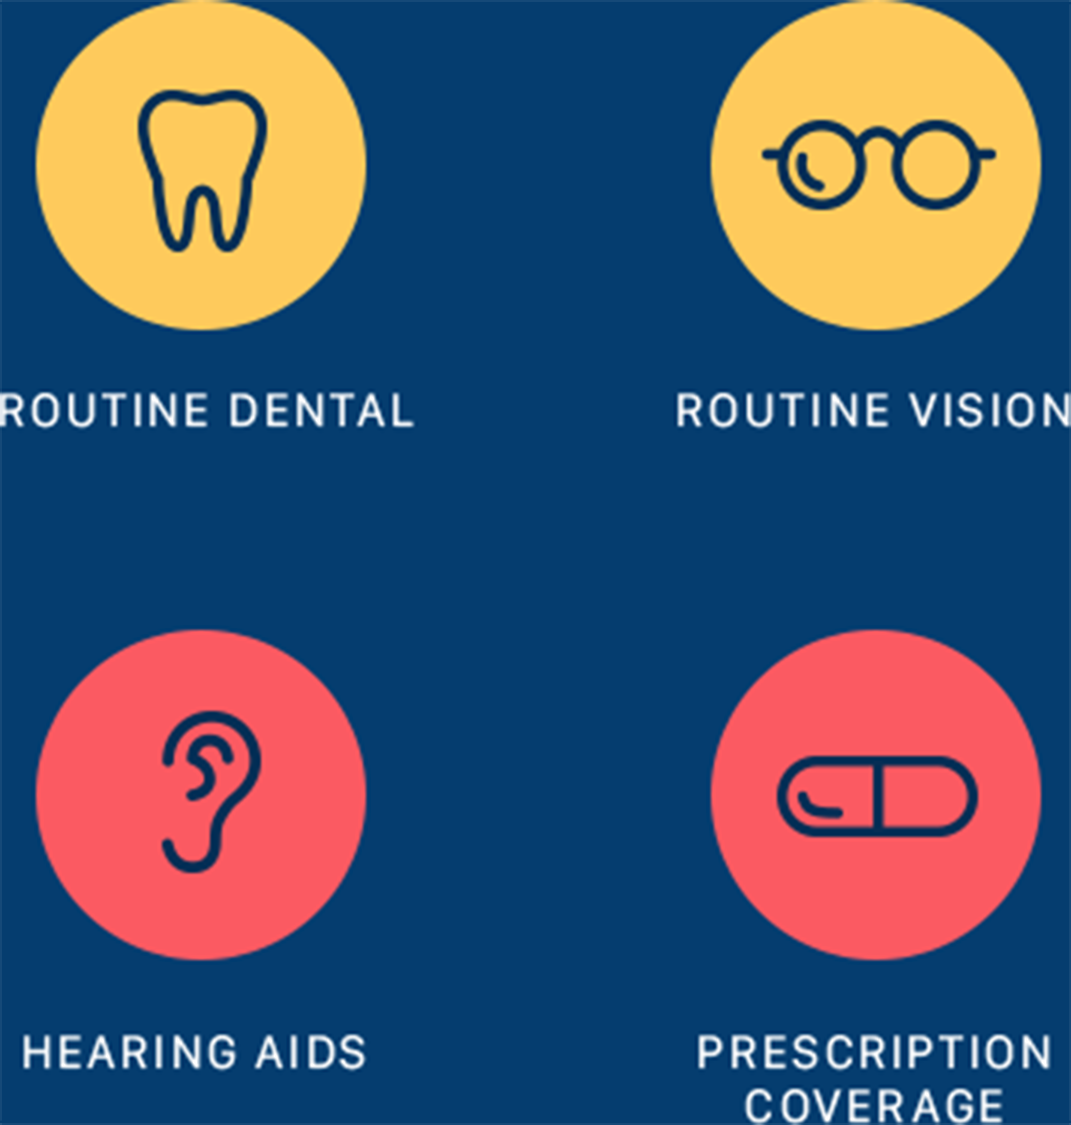 Routine Dental, Routine Vision, Hearing Aids, Prescription Coverage Desktop